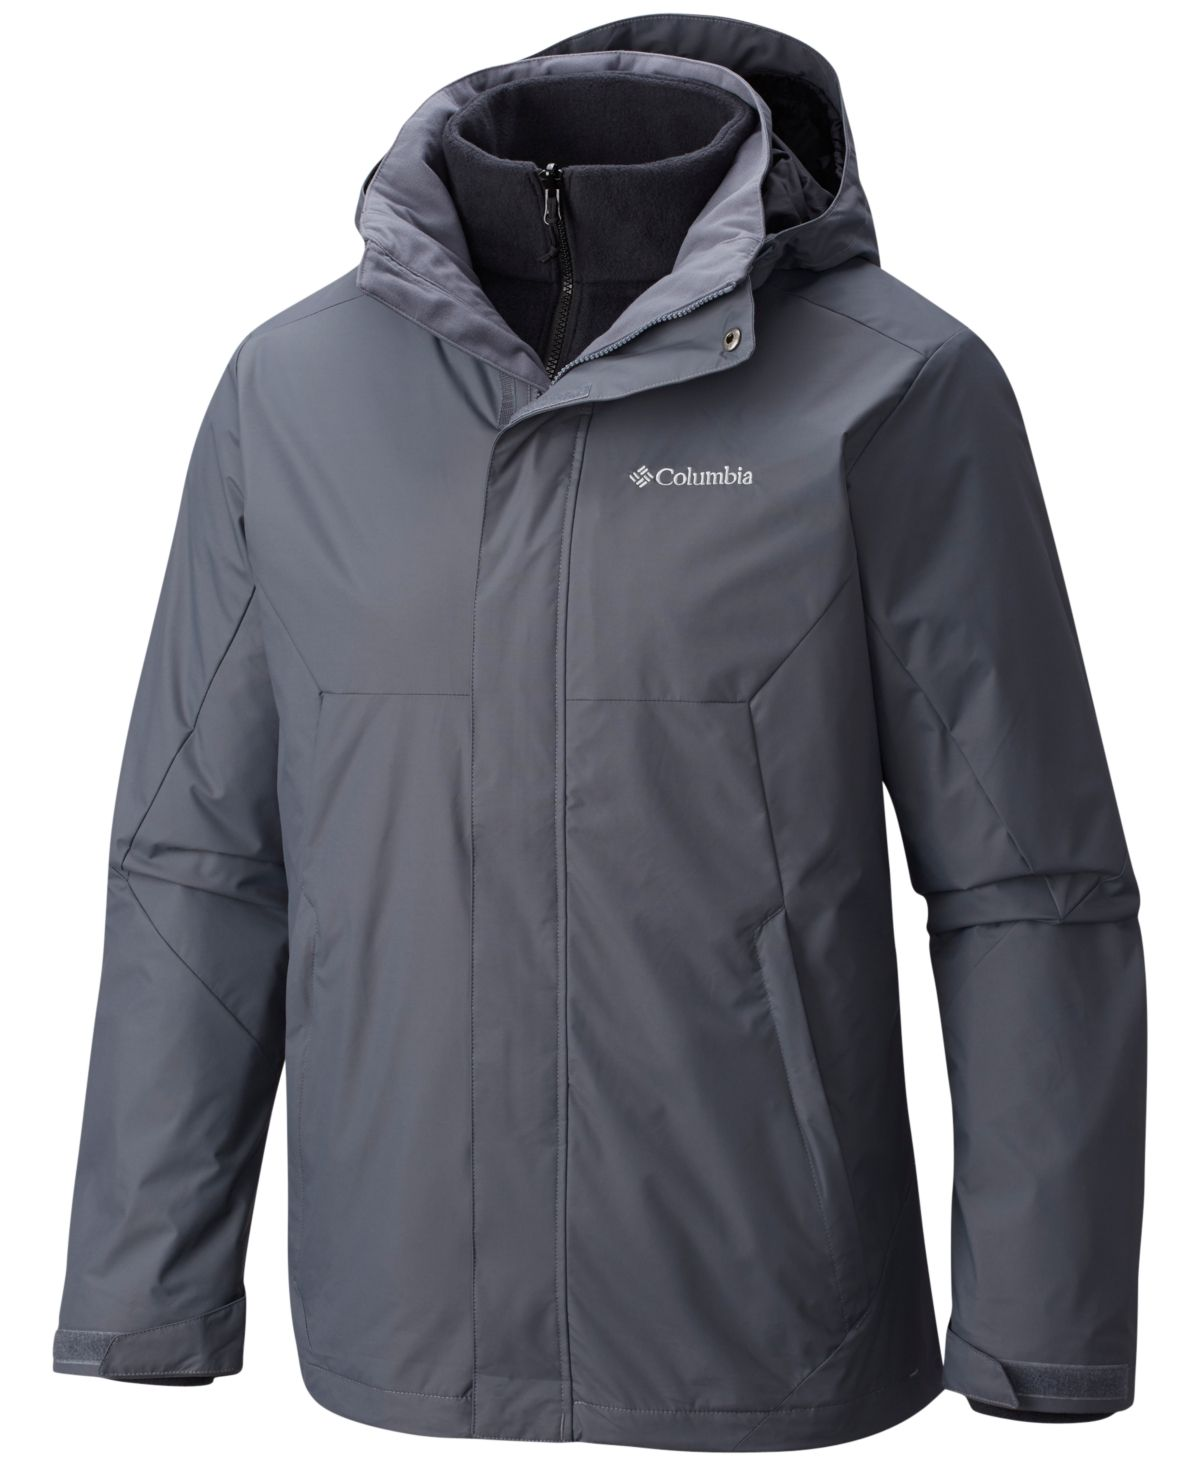 Columbia Men's Eager Air 3 in 1 Omni Shield Jacket